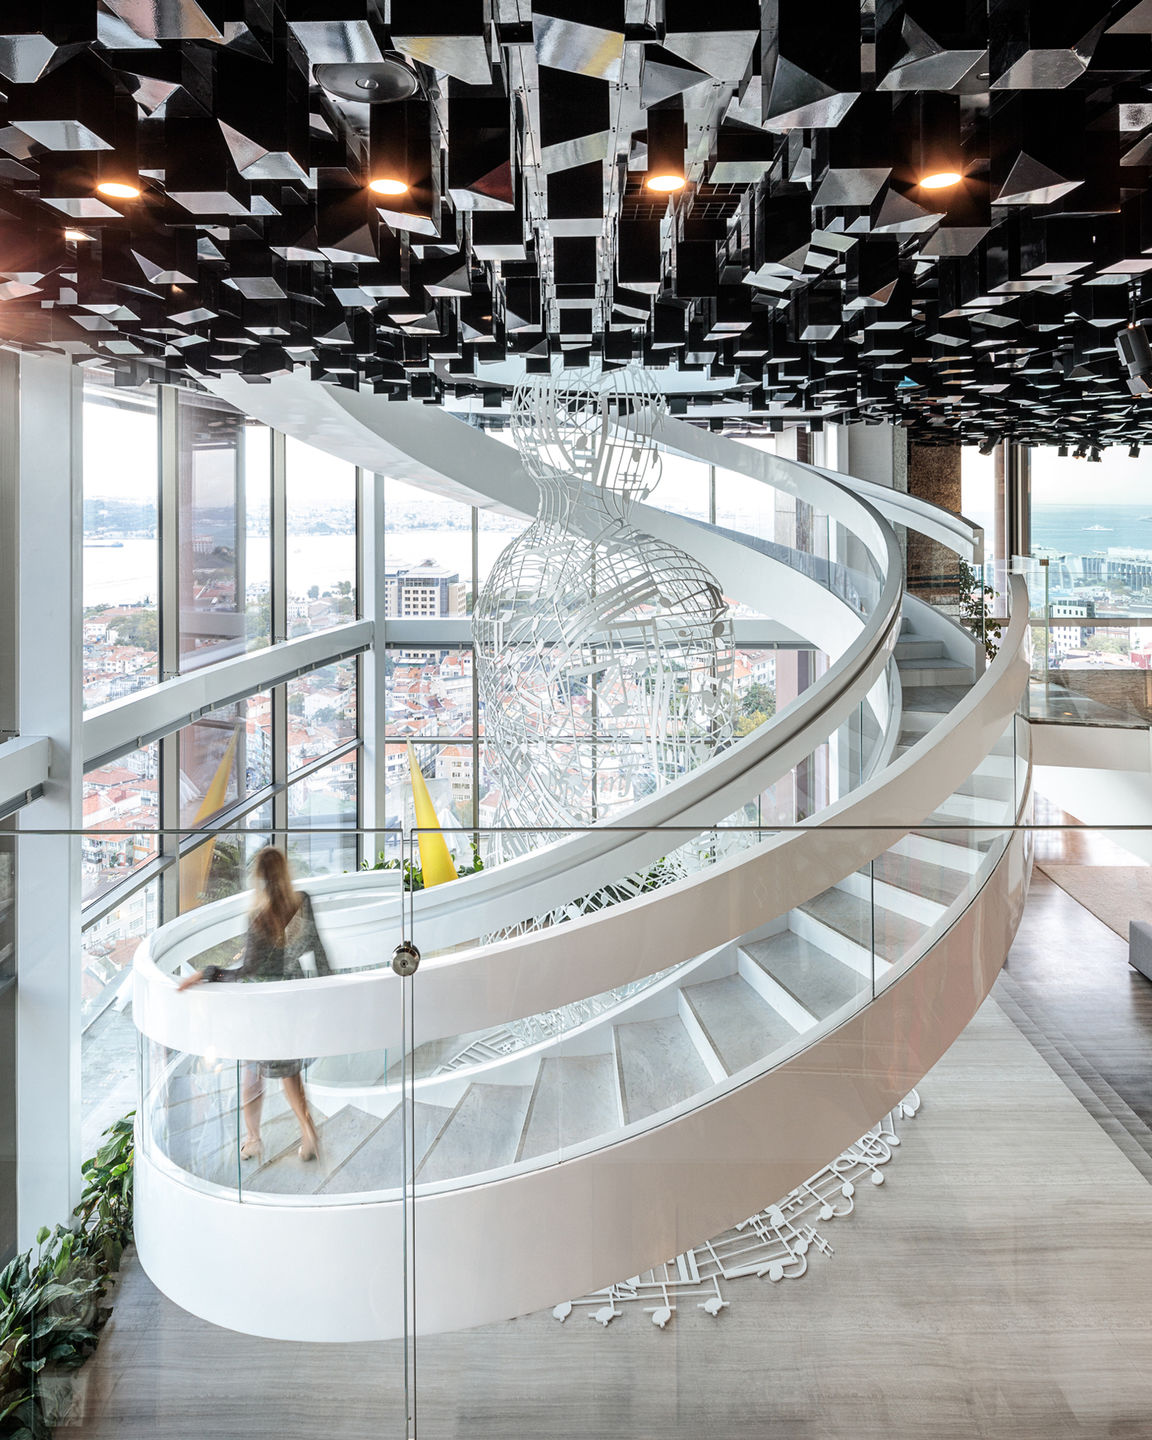 Istanbul penthouse studio rhe archello for Cube suites istanbul